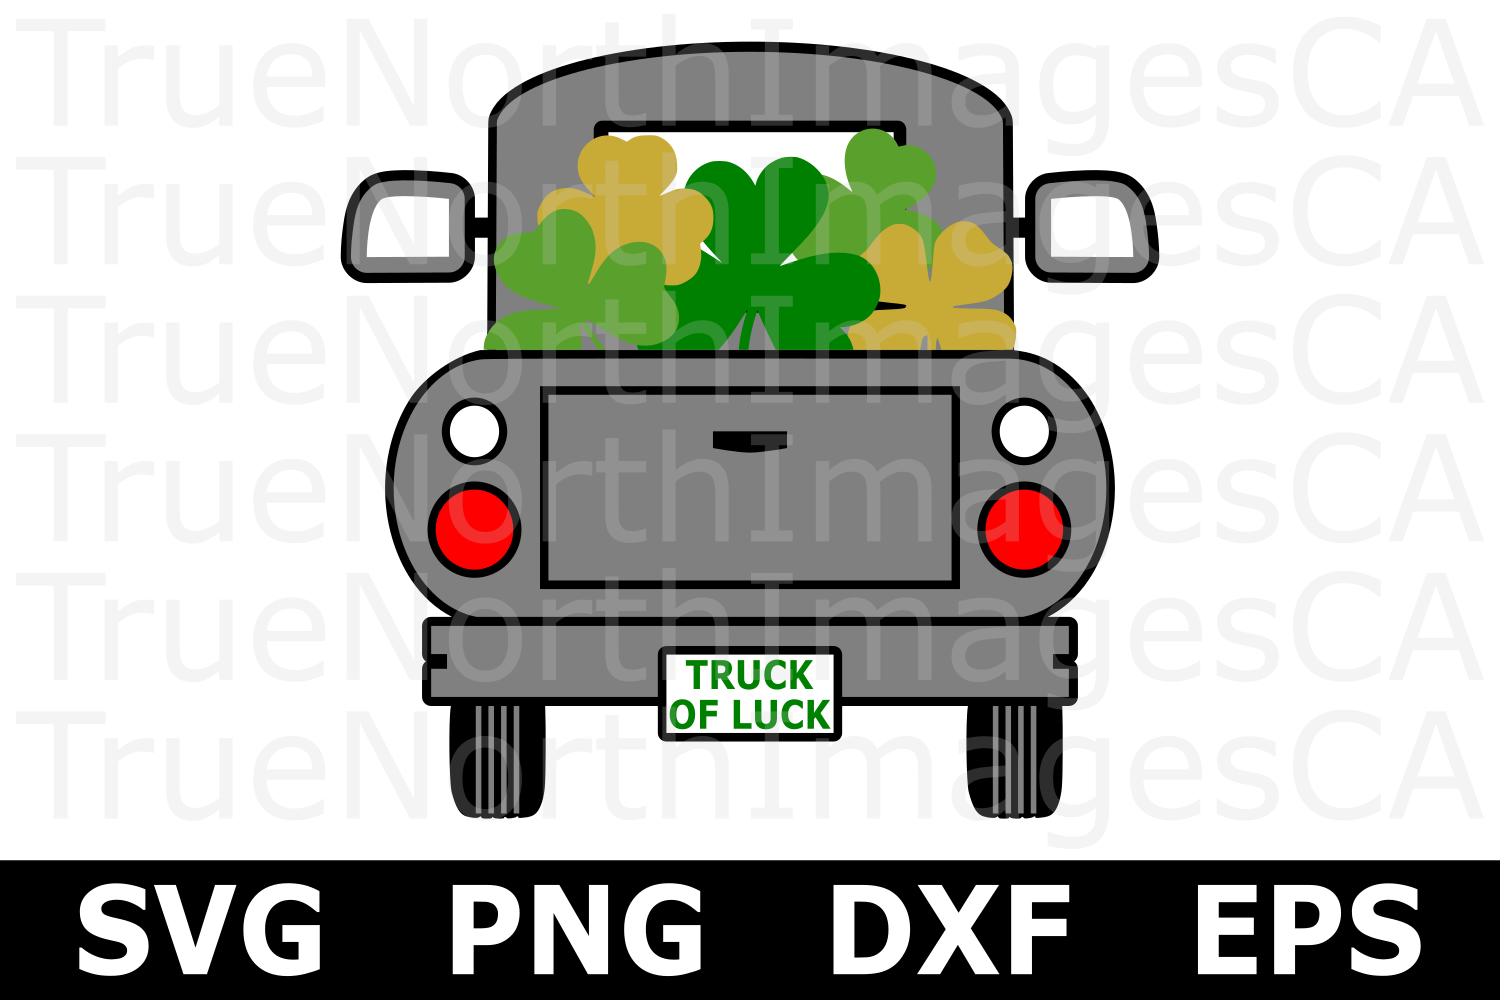 Truck of Luck - St Patricks Day SVG Cut File example image 1